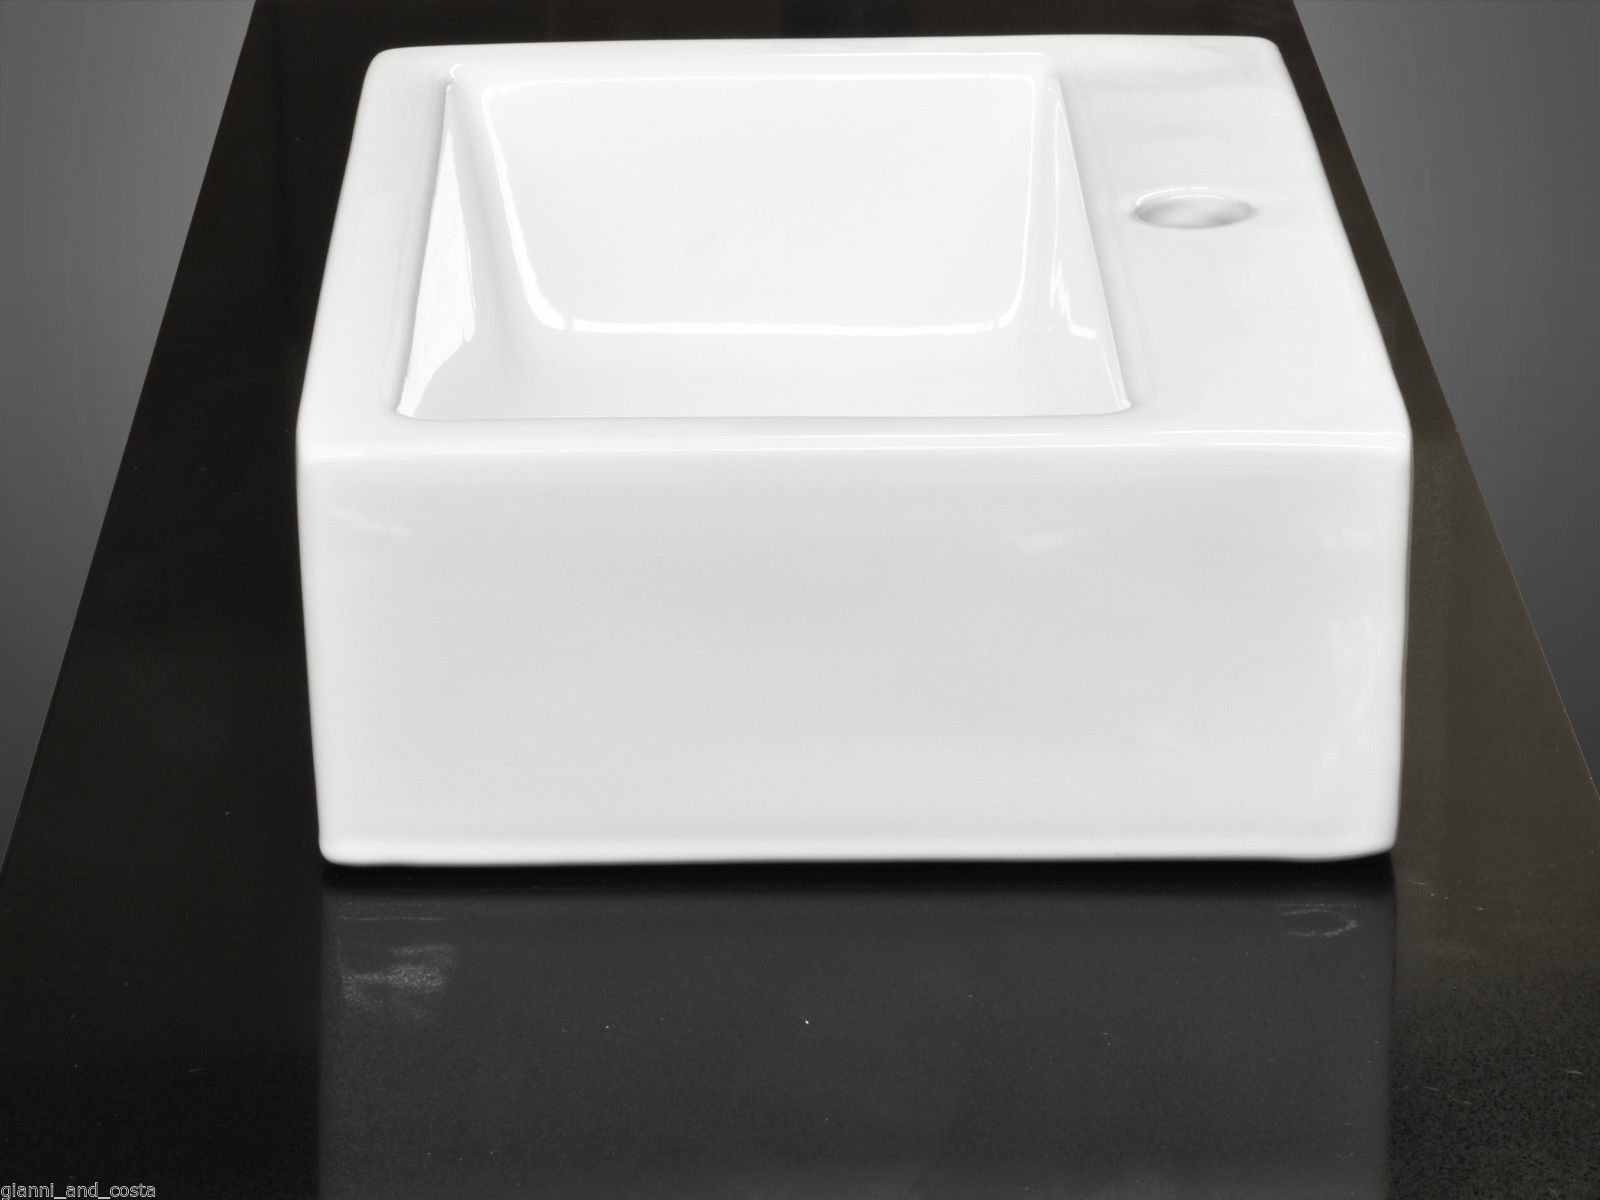 CERAMIC RECTANGULAR ABOVE COUNTER TOP OR WALL HUNG BASINPOP-UP WASTE